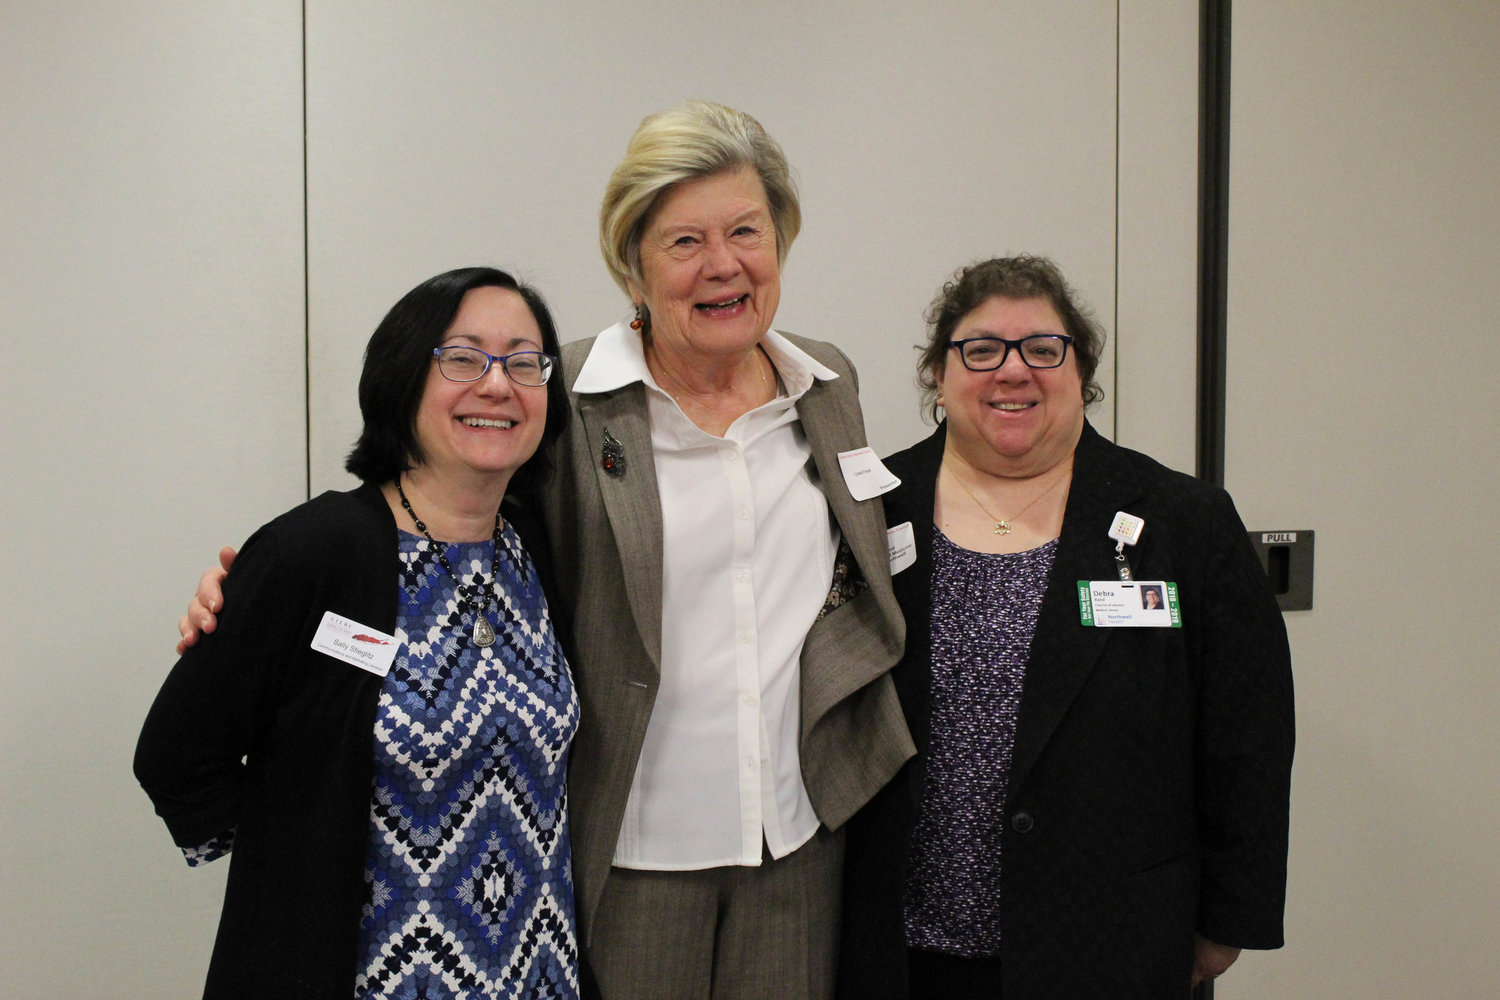 The Long Island Library Resource Council's fourth annual Hospital Library Services Program conference took place on April 5. Representing the LILRC was Sally Stieglitz, communications and marketing librarian, Linda Frank, a teacher and author, and Debra Rand, a medical librarian.